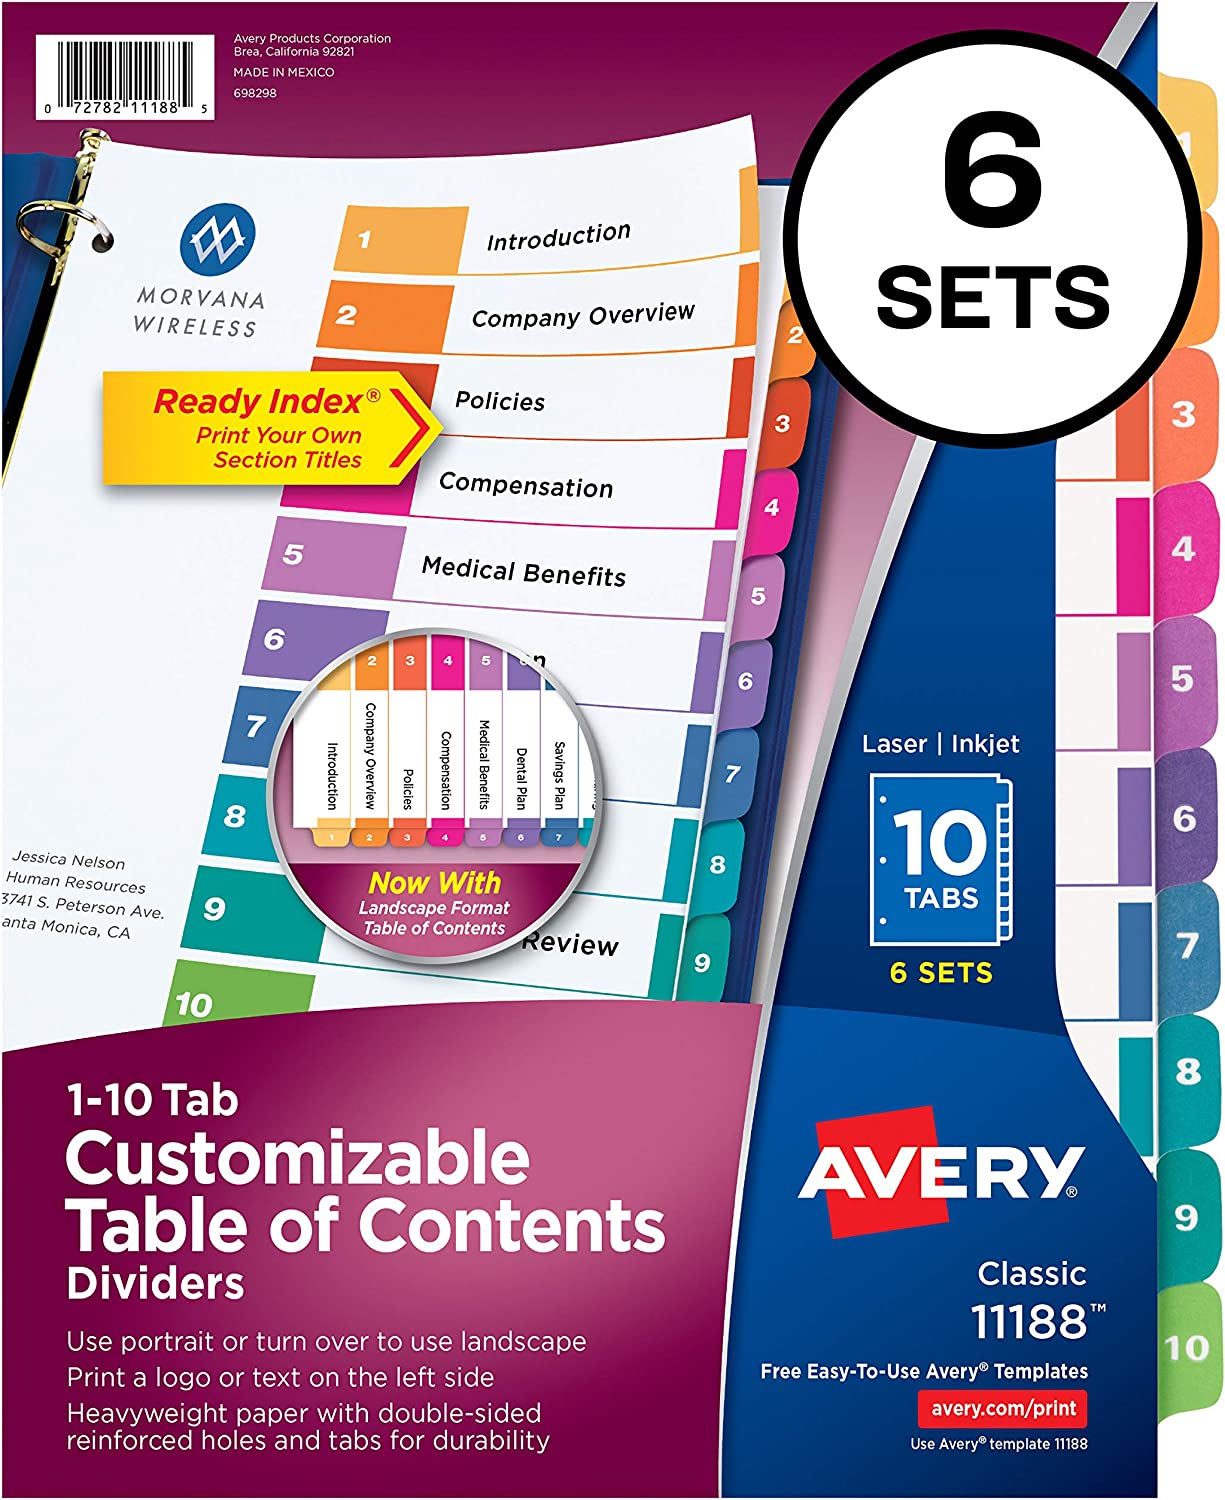 B00006IBW5 Avery 10-Tab Dividers for 3 Ring Binders, Customizable Table of Contents, Multicolor Tabs, 6 Sets (11188) 81SCjDd-B7L